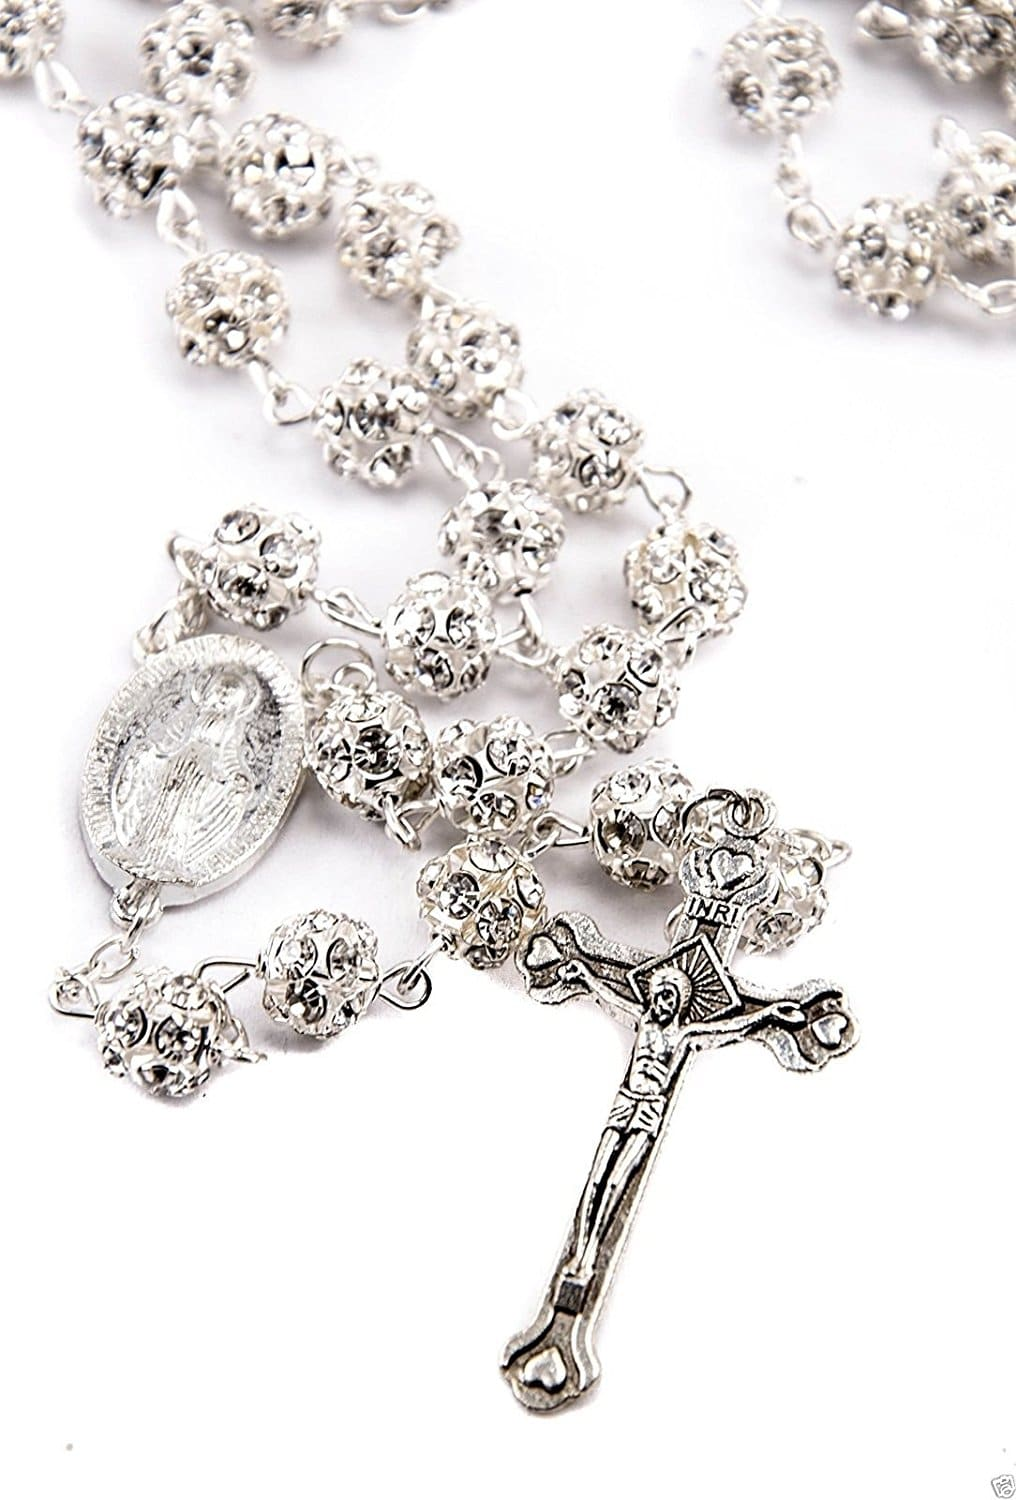 White Crystals Beads Rosary Necklace from the Holy Land